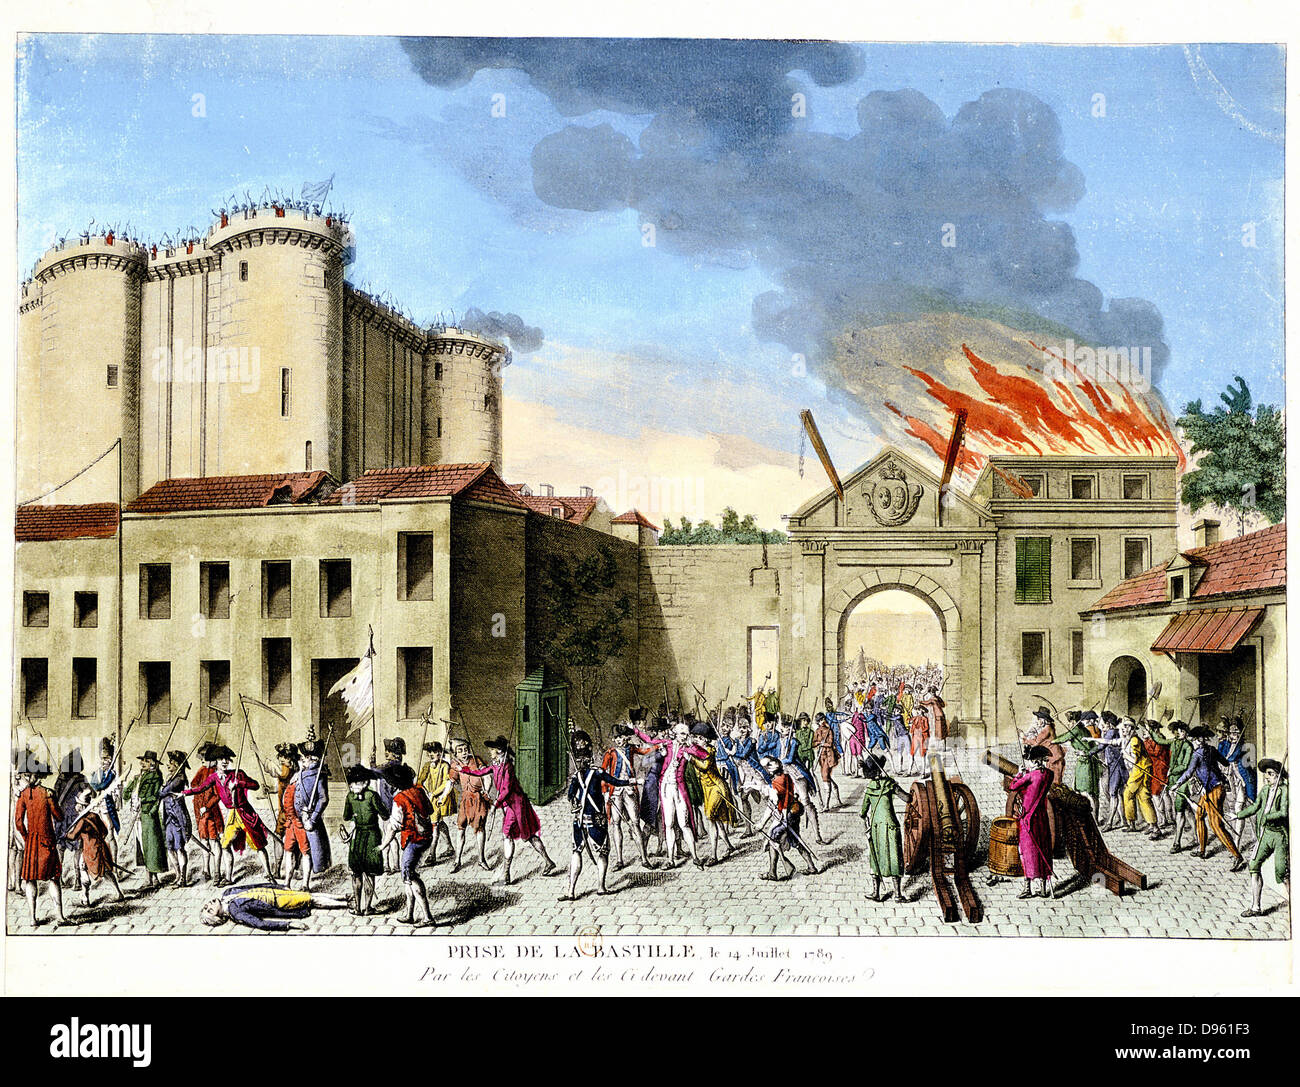 the french revolution of 1789 Get an answer for 'what were the principal causes of the french revolution of 1789' and find homework help for other history questions at enotes.